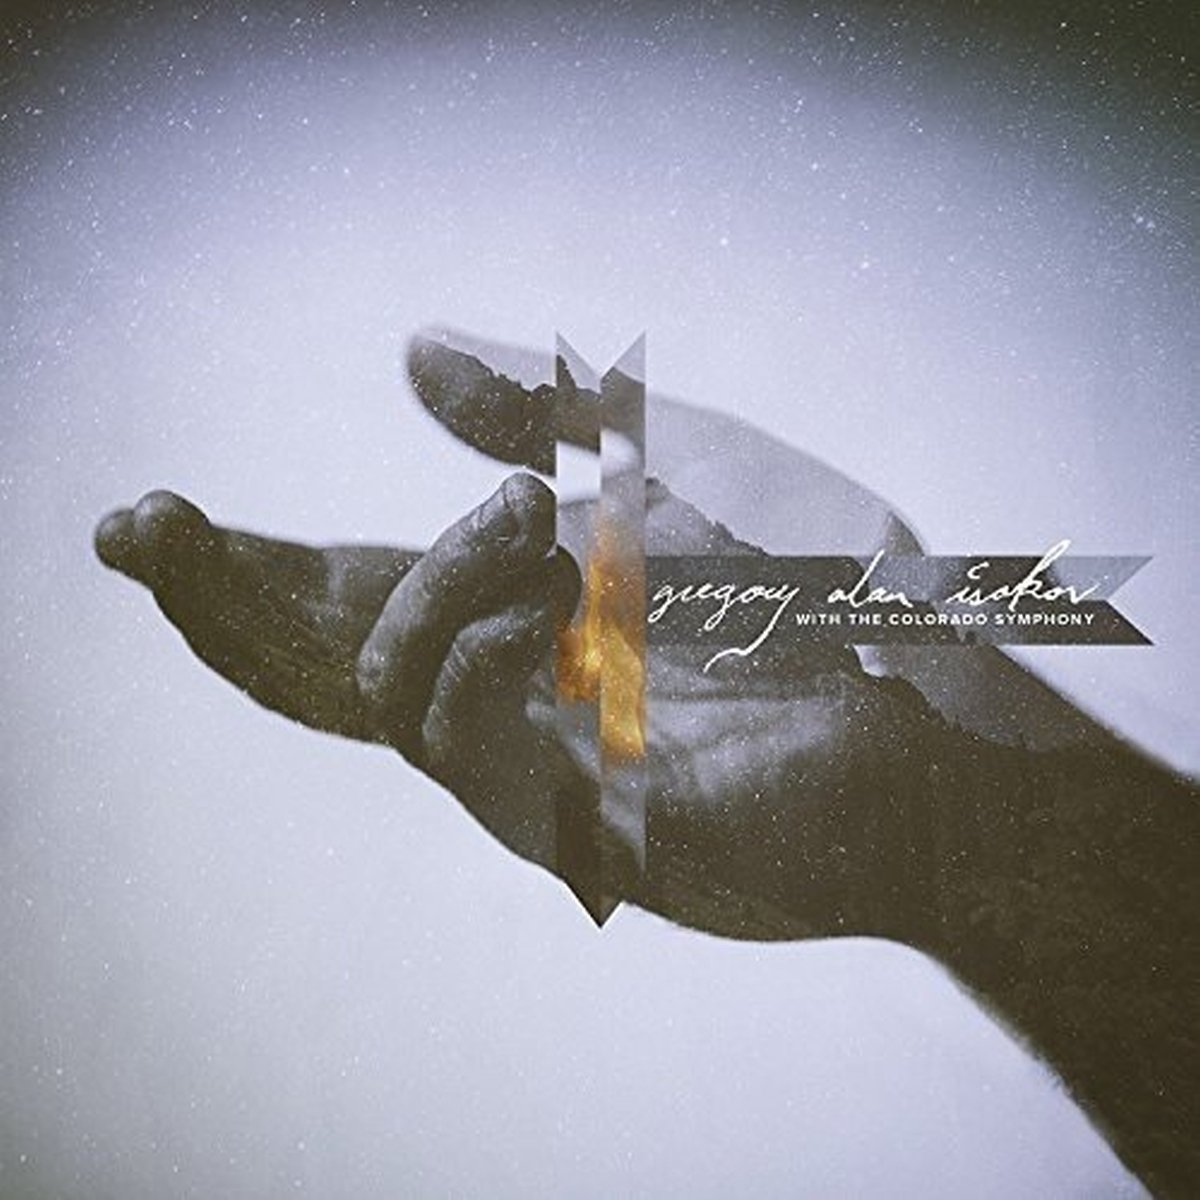 Gregory Alan Isakov with the - Suitcase Town: Amazon.de: Musik